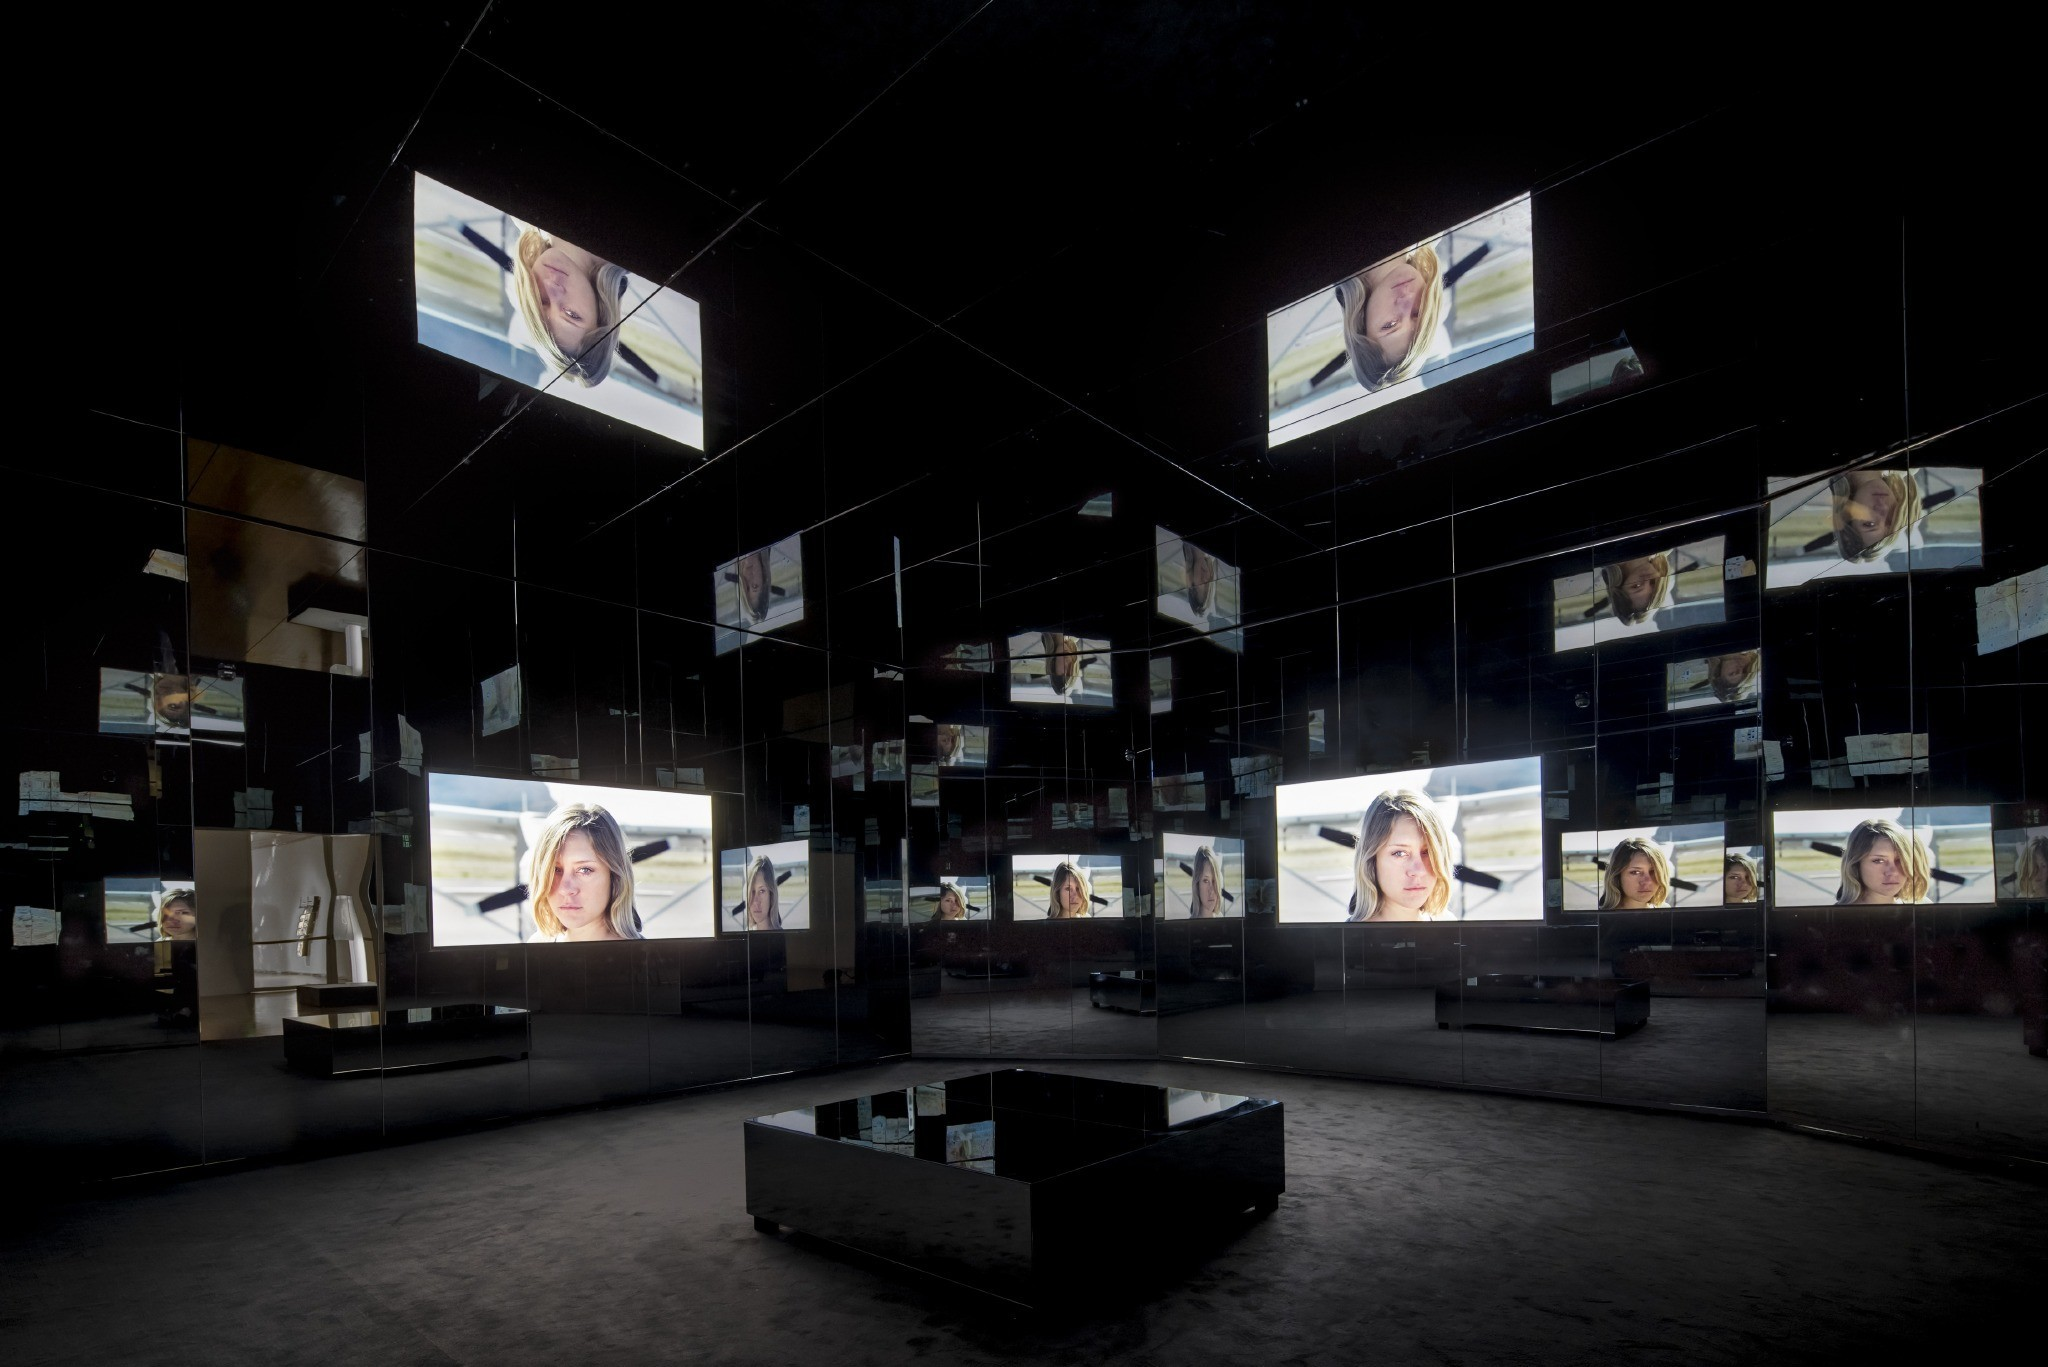 """In """"Black Mirror,"""" images are reflected in a kaleidoscopic, Cubist-style infinity."""